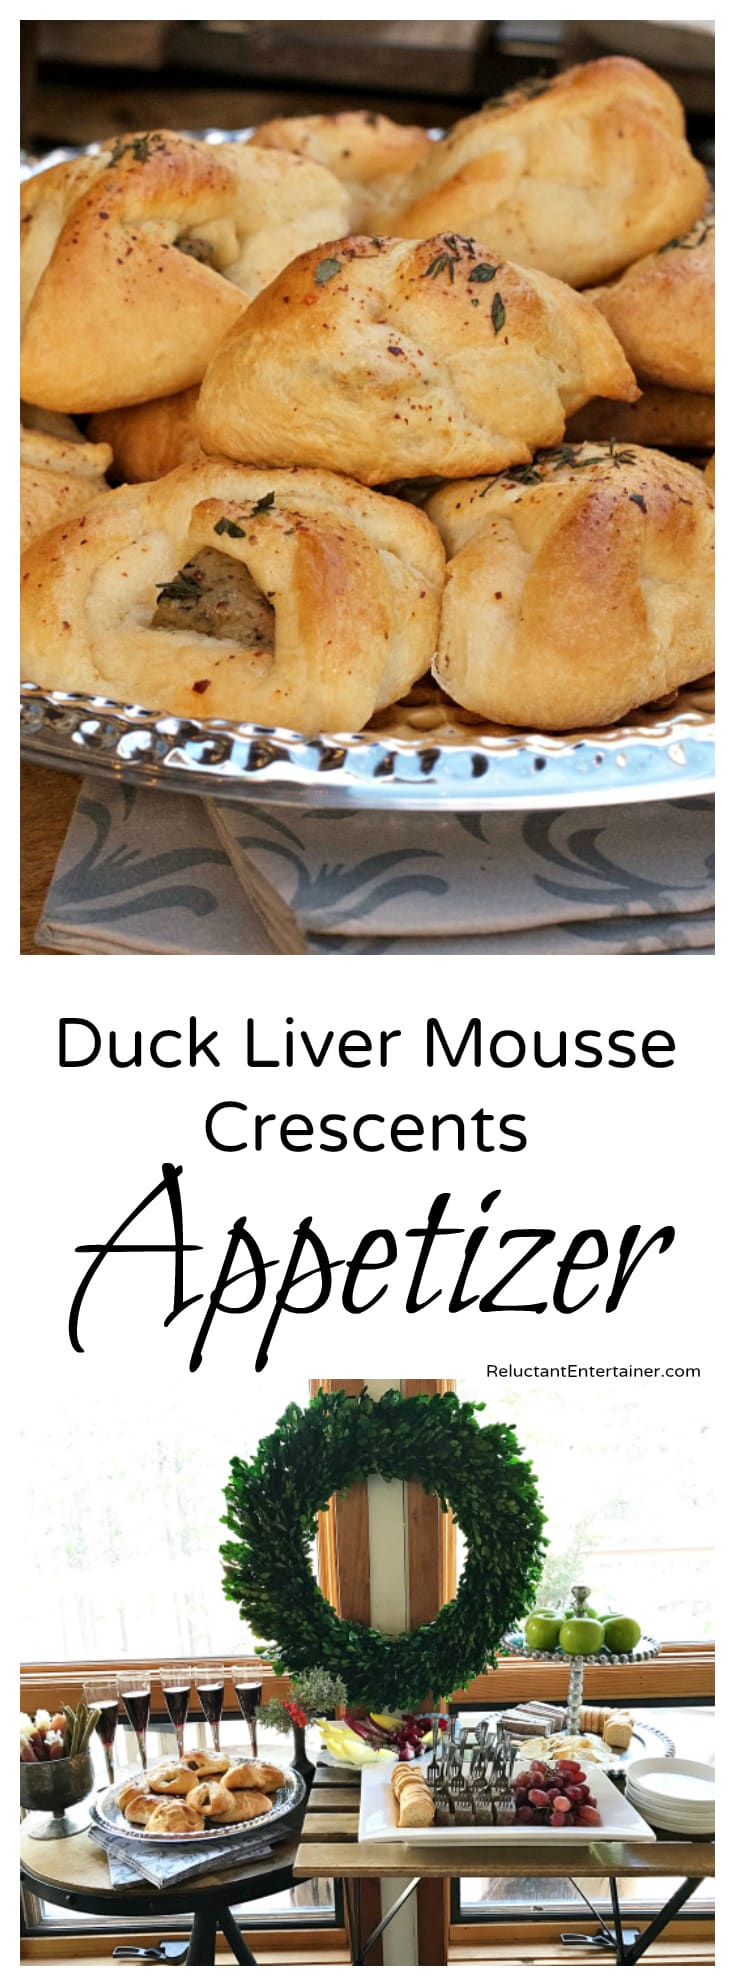 Duck Liver Mousse Crescents Appetizer